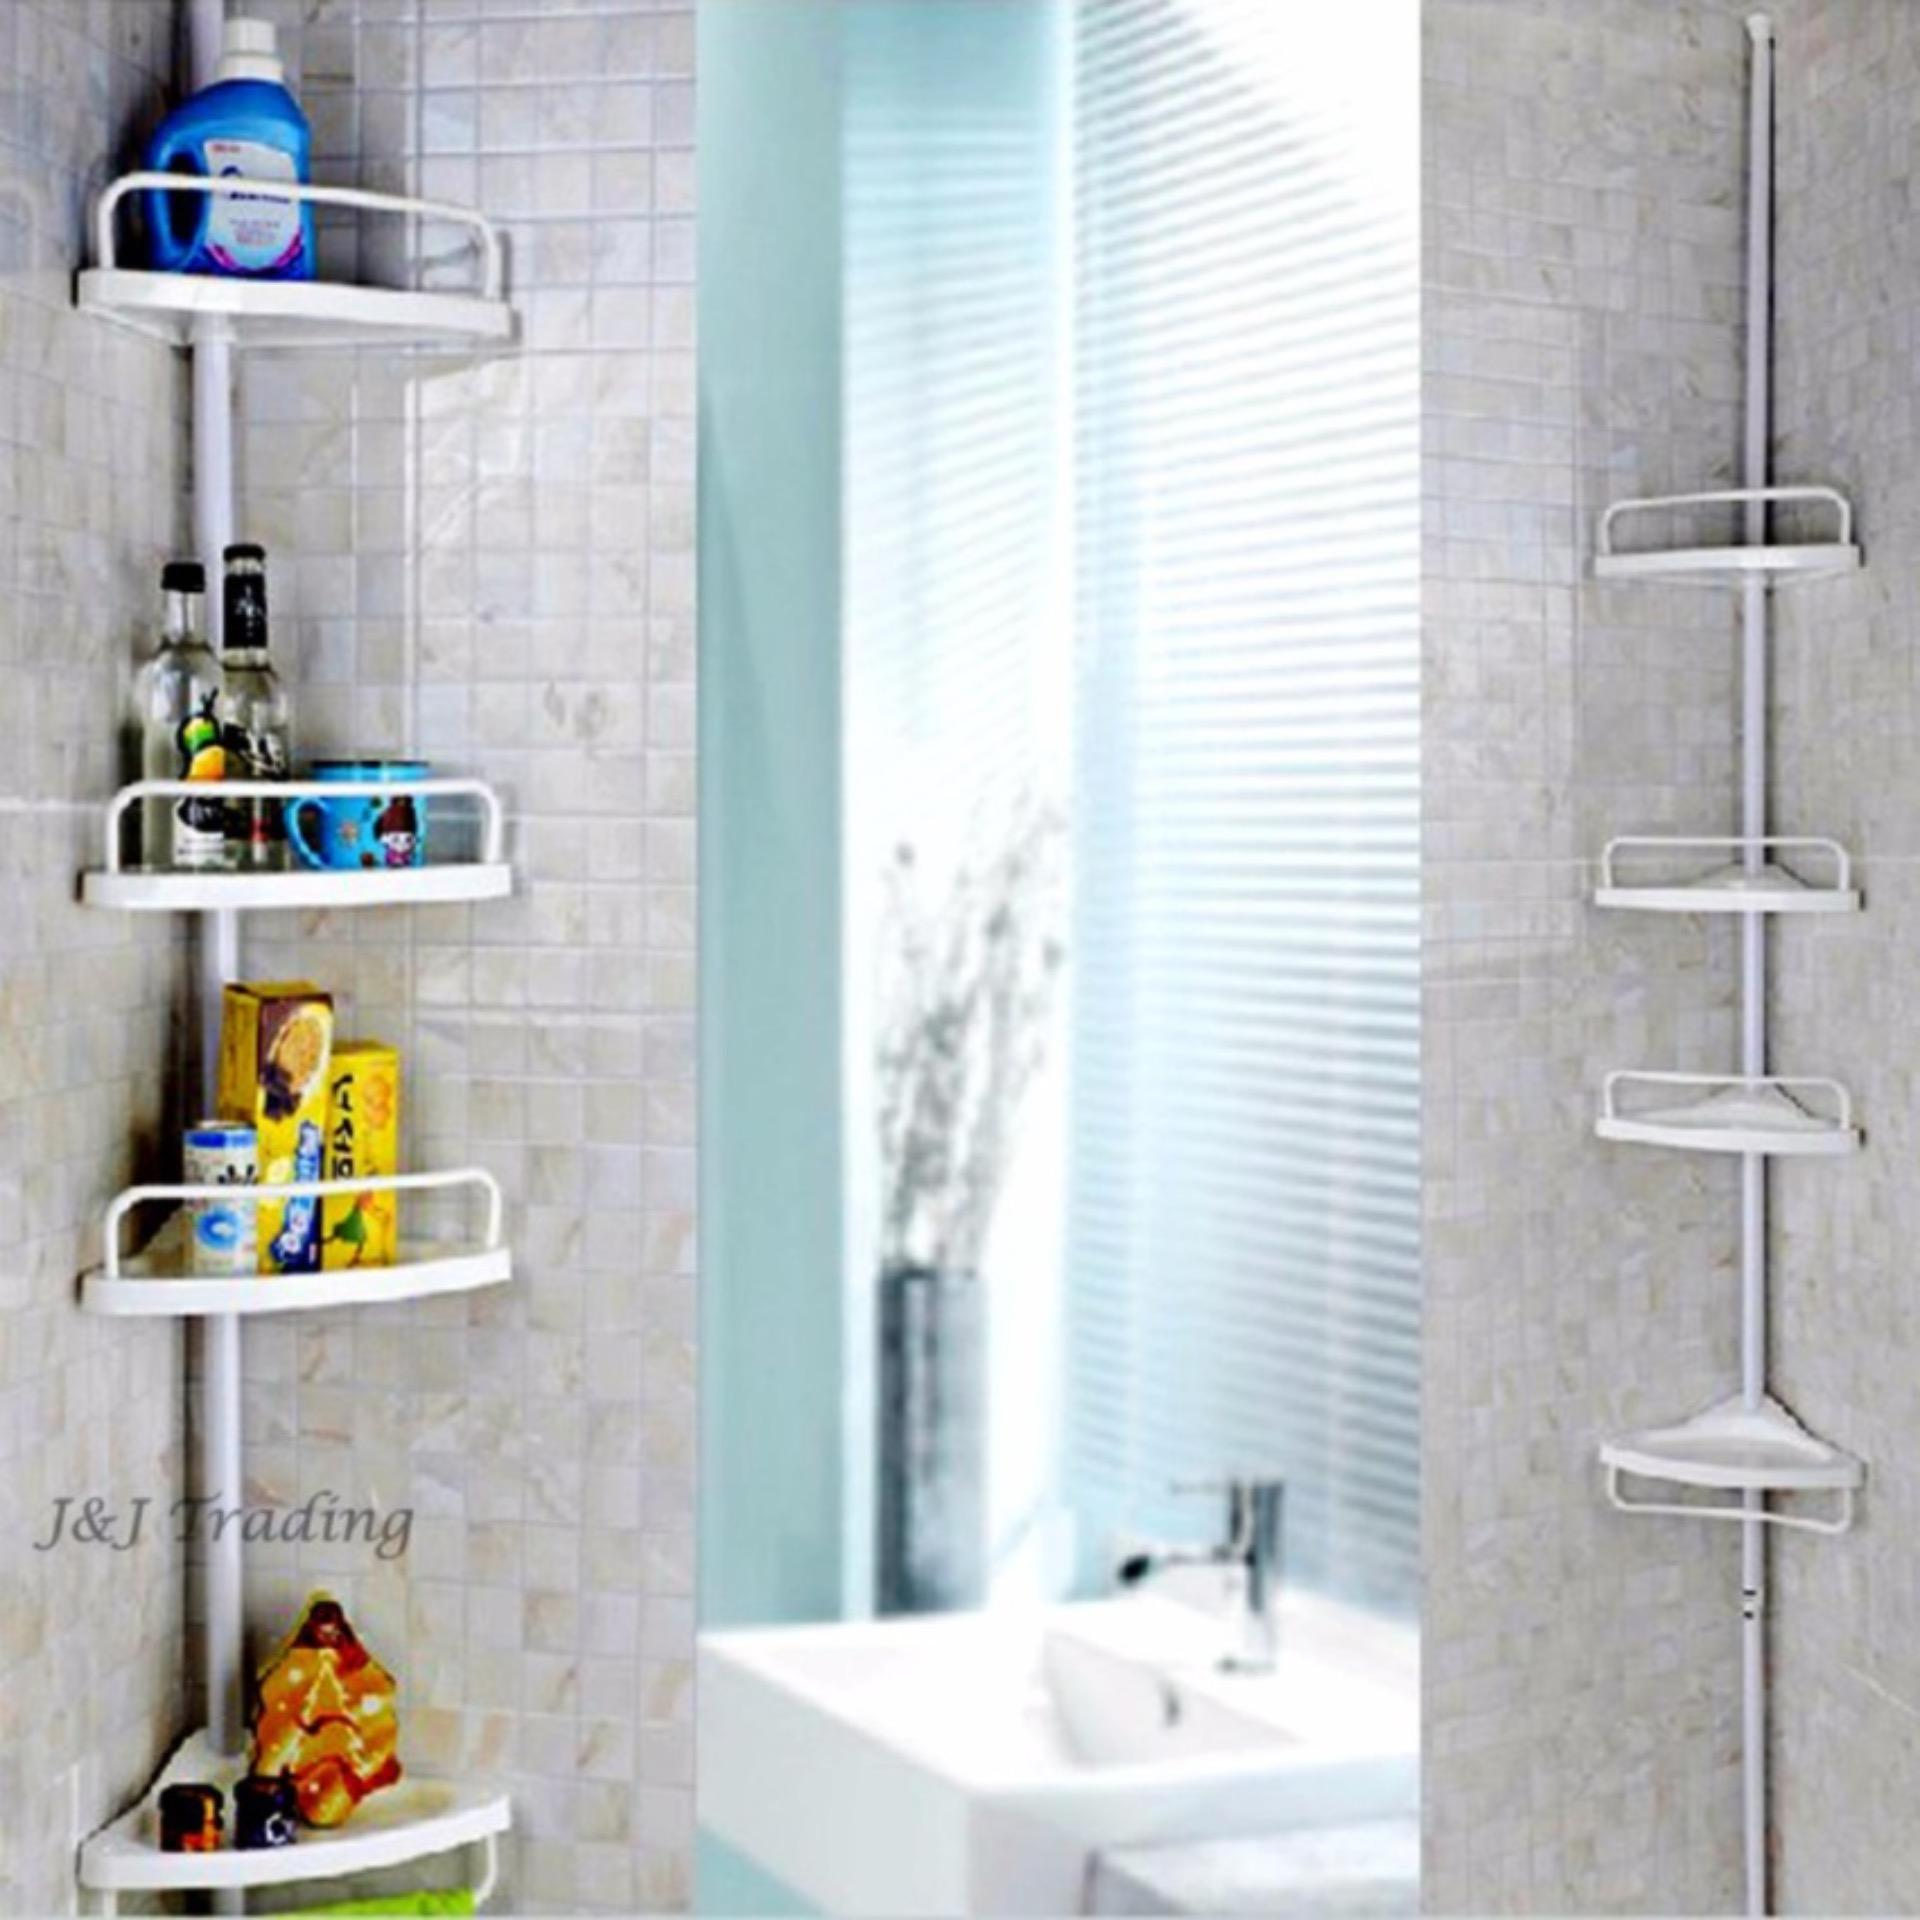 Philippines | Adjustable Bathroom Corner Pole Caddy Shower Organizer ...